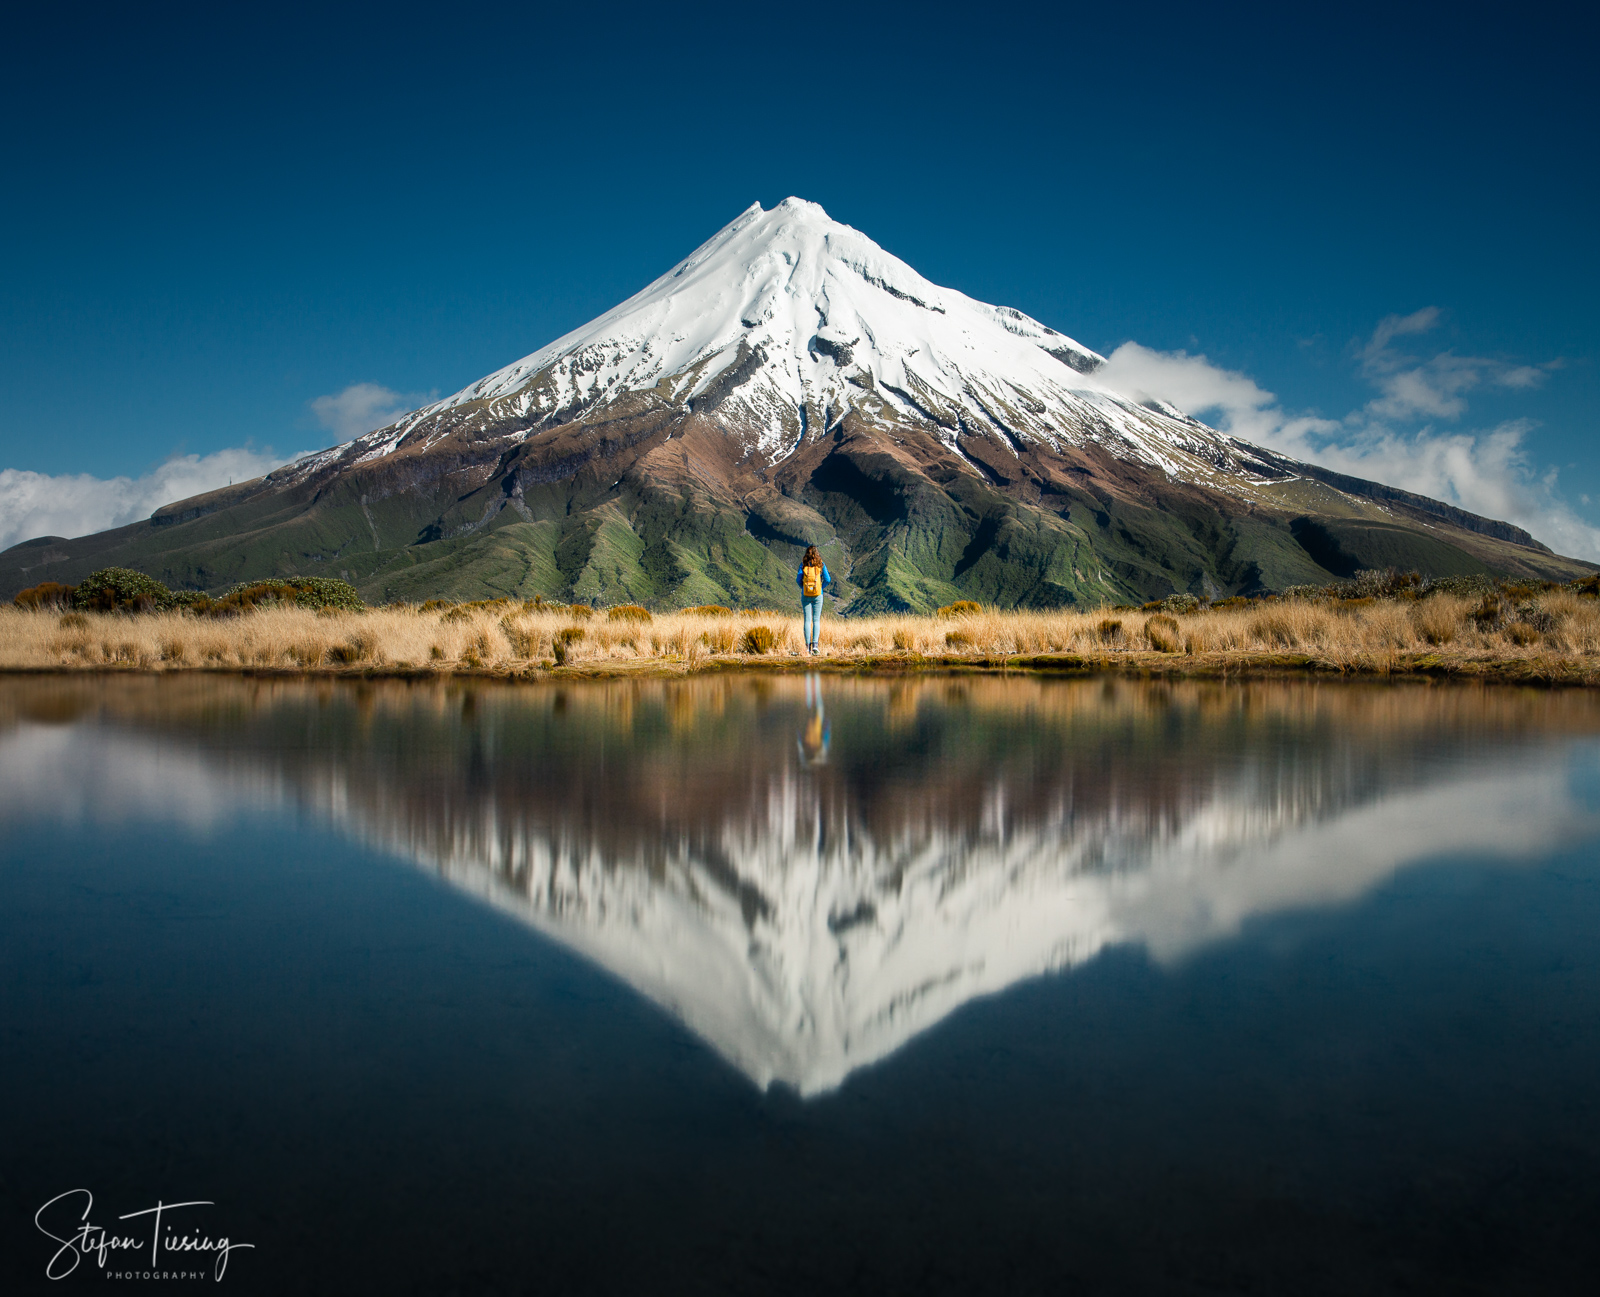 Pouakai Circuit Reflective Tarn (Mount Taranaki), New Zealand